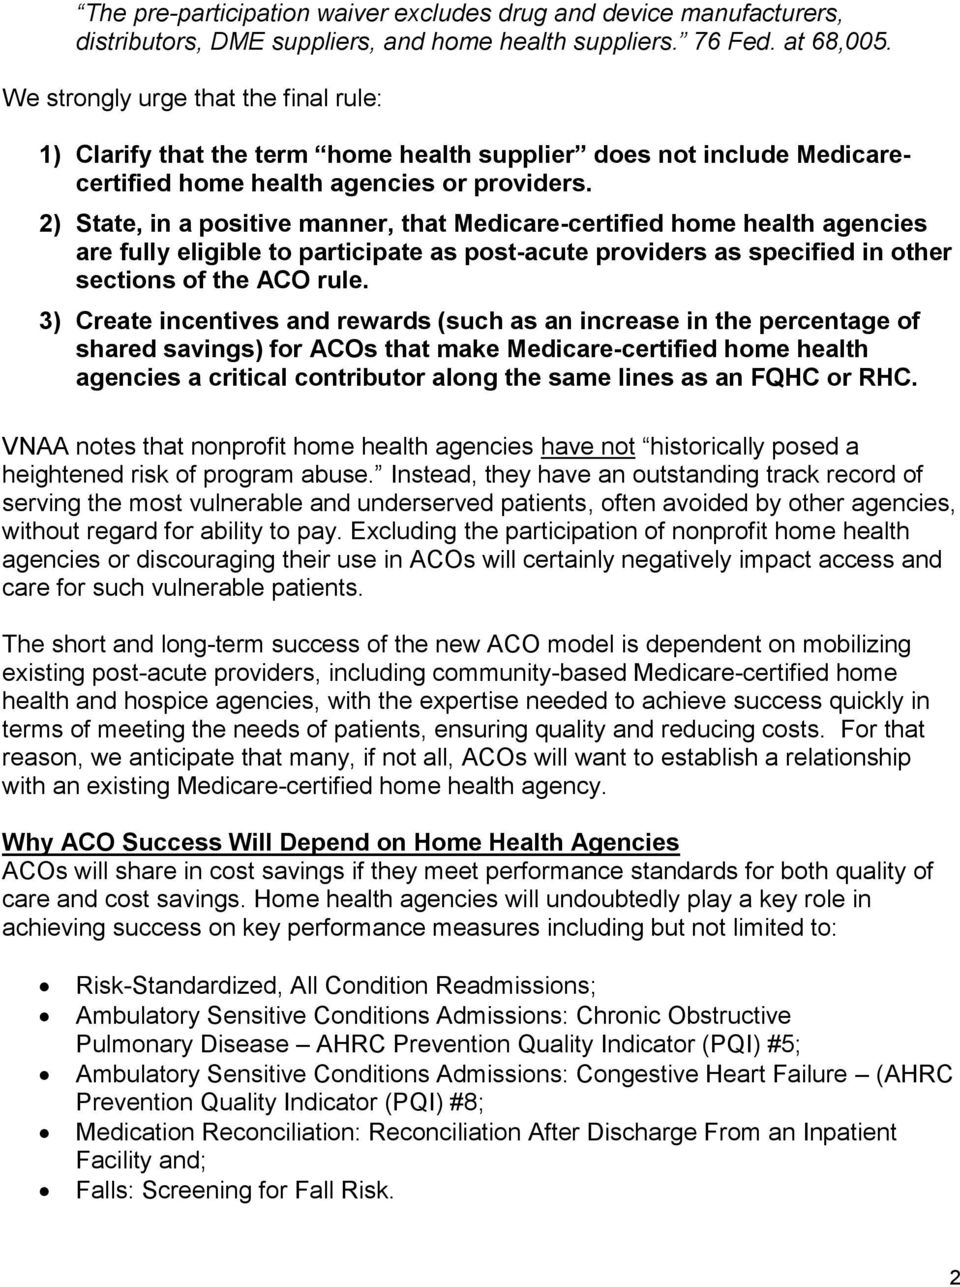 2) State, in a positive manner, that Medicare-certified home health agencies are fully eligible to participate as post-acute providers as specified in other sections of the ACO rule.